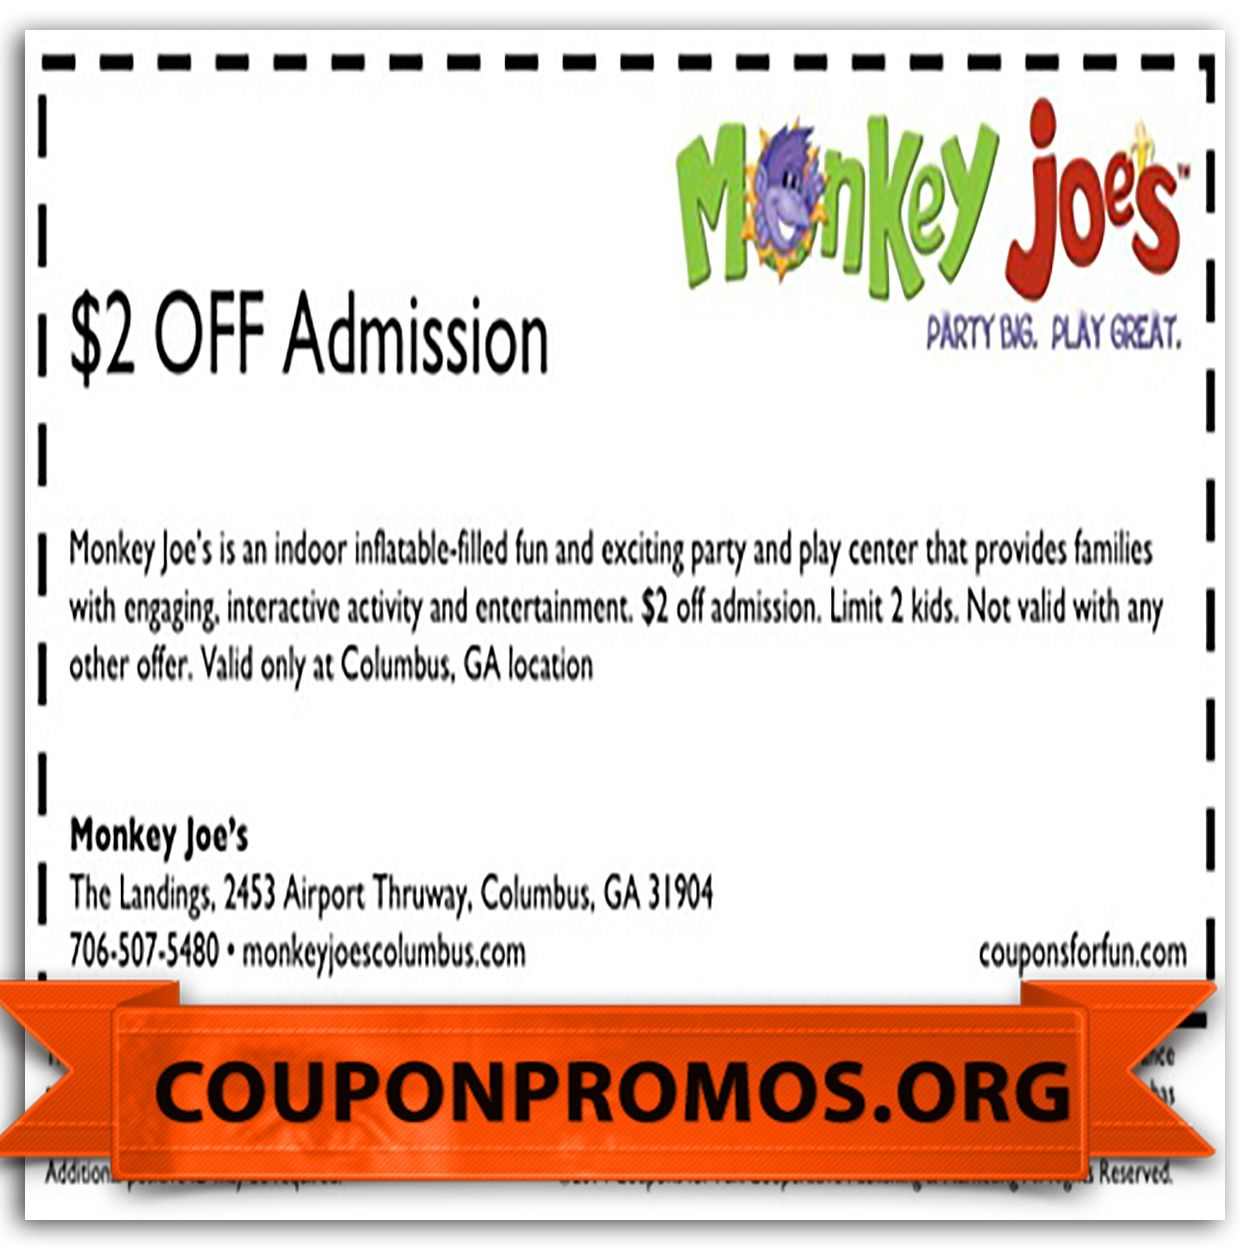 photograph regarding Monkey Joes Coupons Printable called printable low cost coupon codes for monkey joes for January